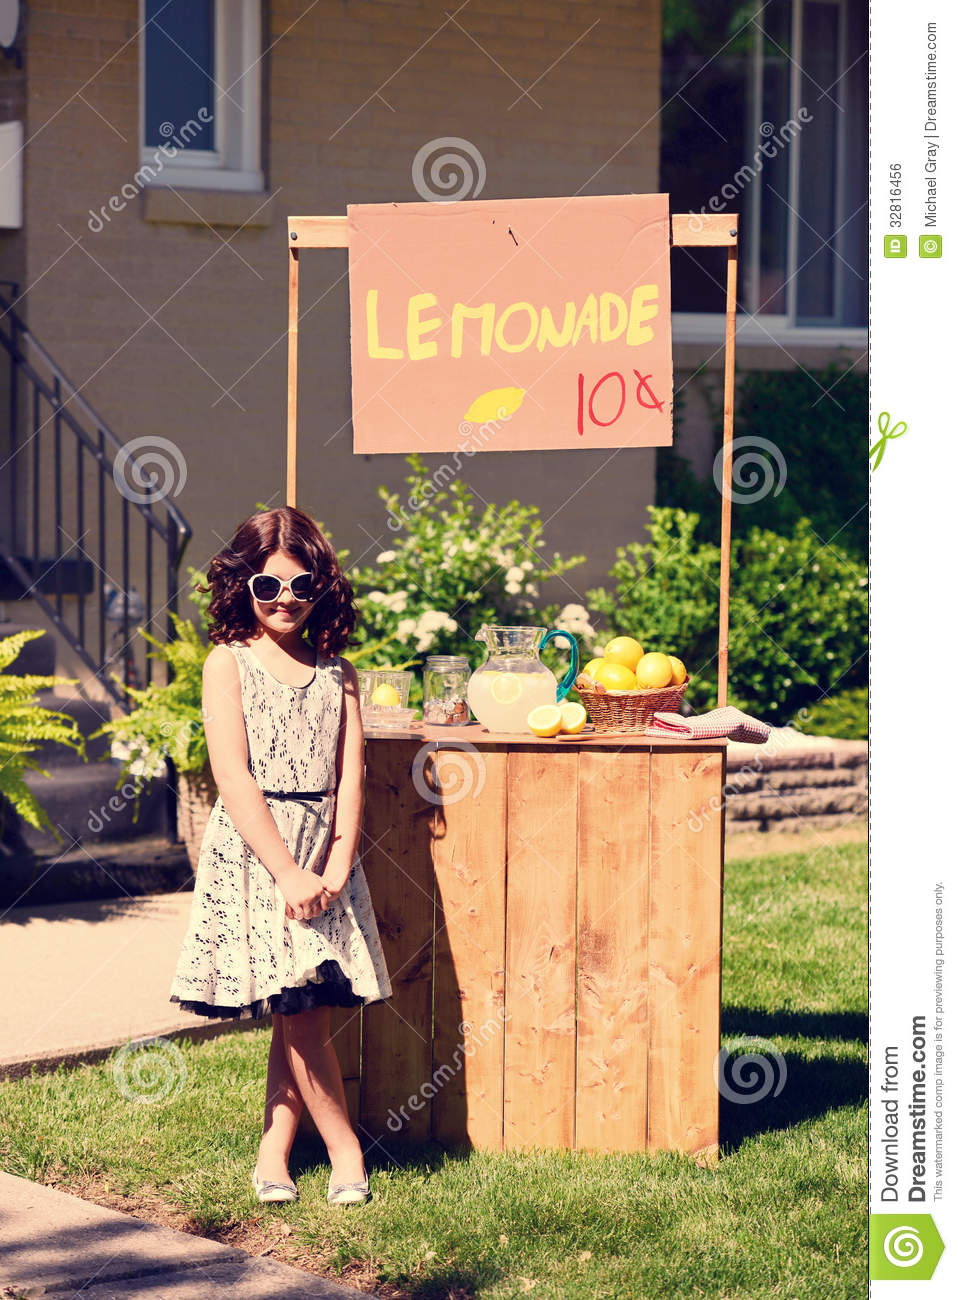 Vintage Little Girl And Her Lemonade Stand Royalty Free Stock Image ...